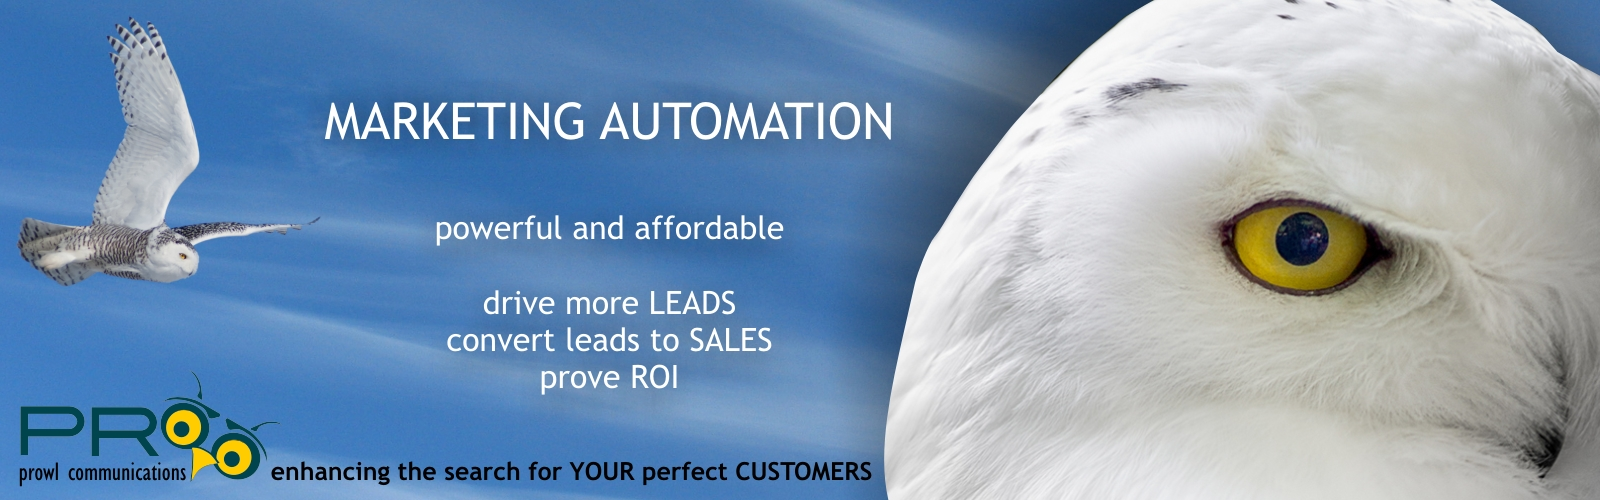 PRowl Communications  logo, snowy owl, marketing automation description